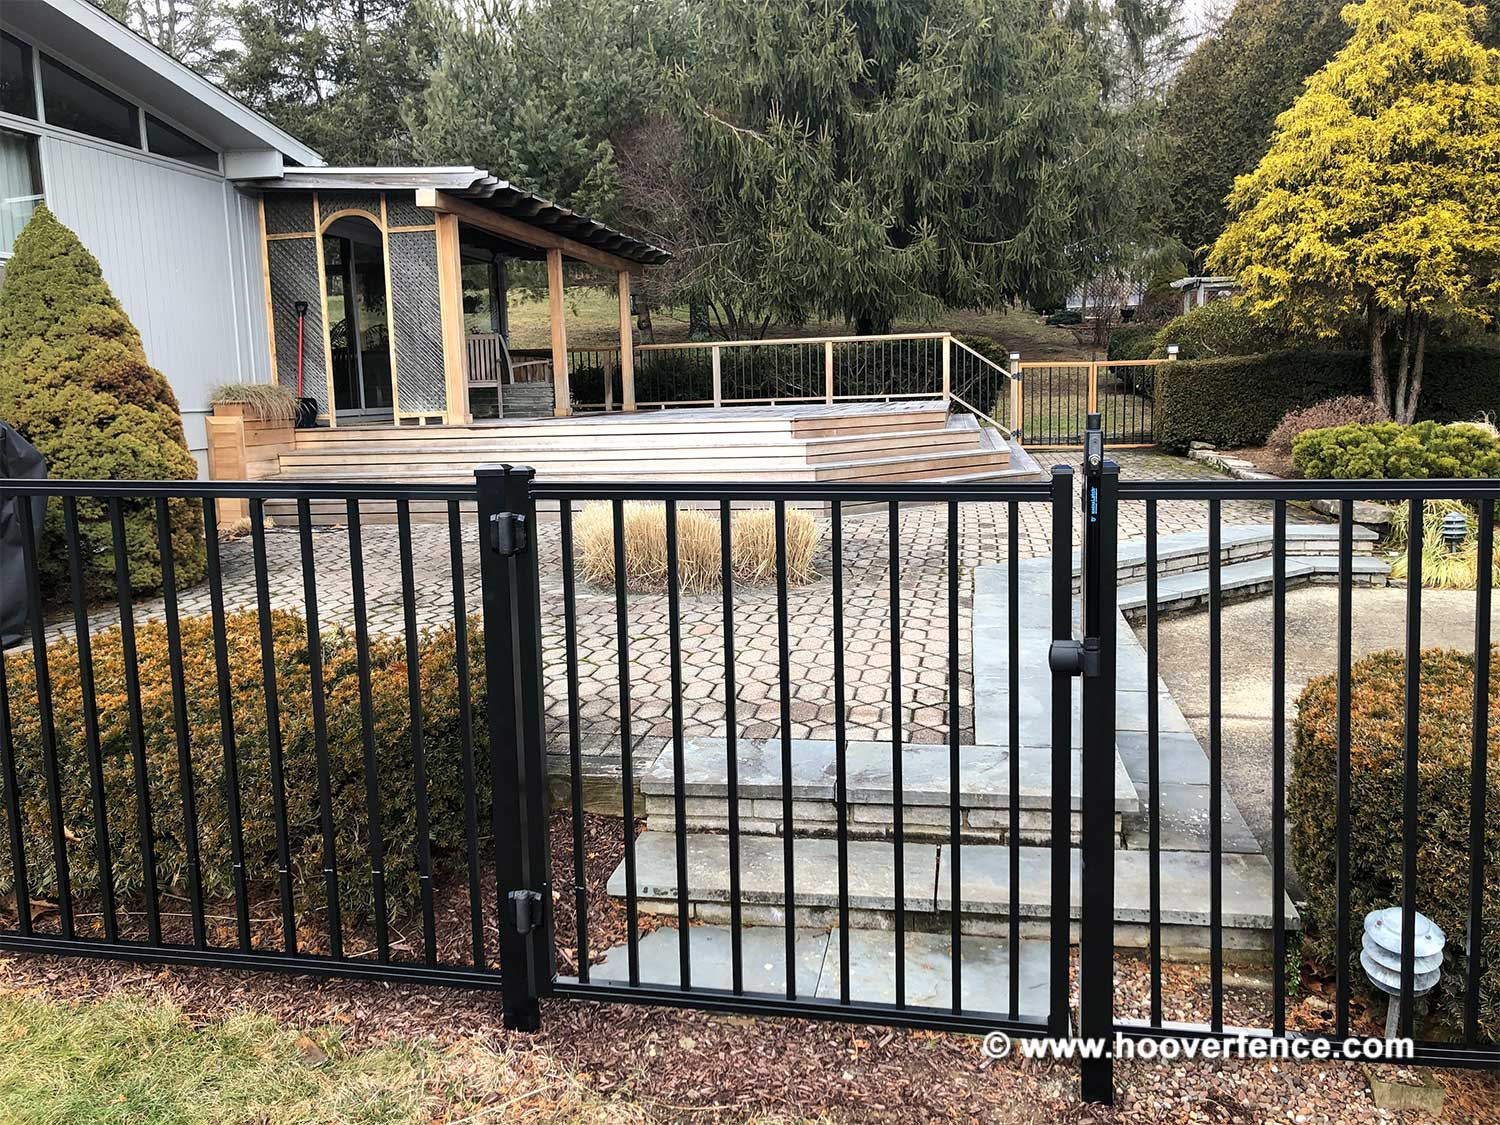 Customer Install - Black Metal Pool Gate Secured with D&D Technologies ML3TPKA Magna-latch Top Pull - Hebron, CT